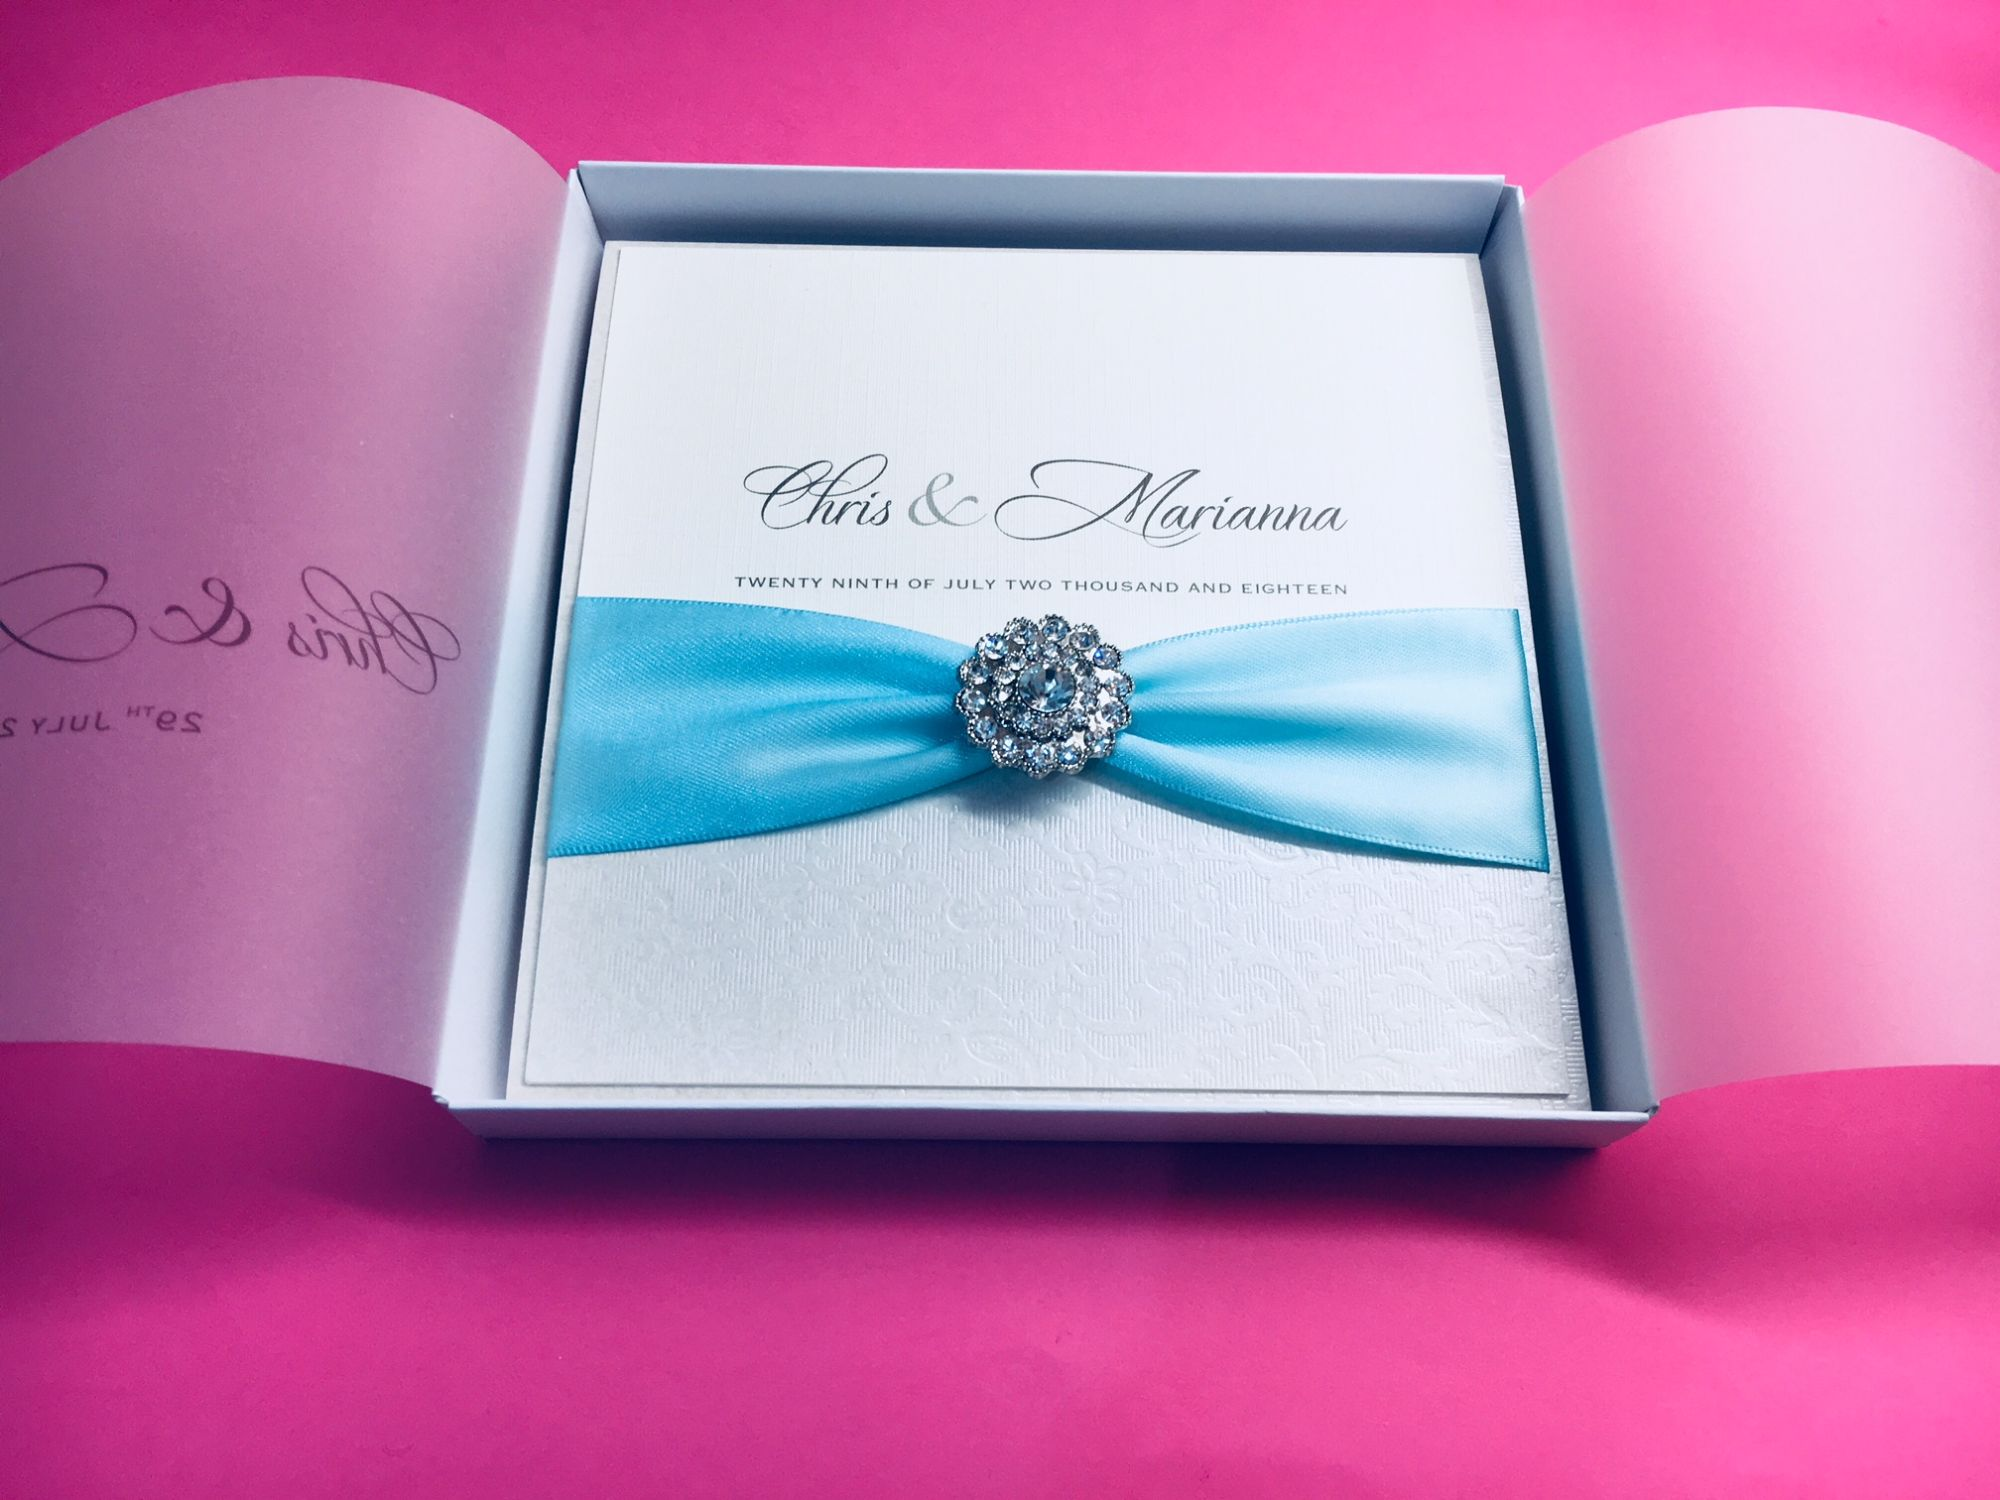 Romantic wedding invitation with aqua blue ribbon and crystal brooch presented in a box